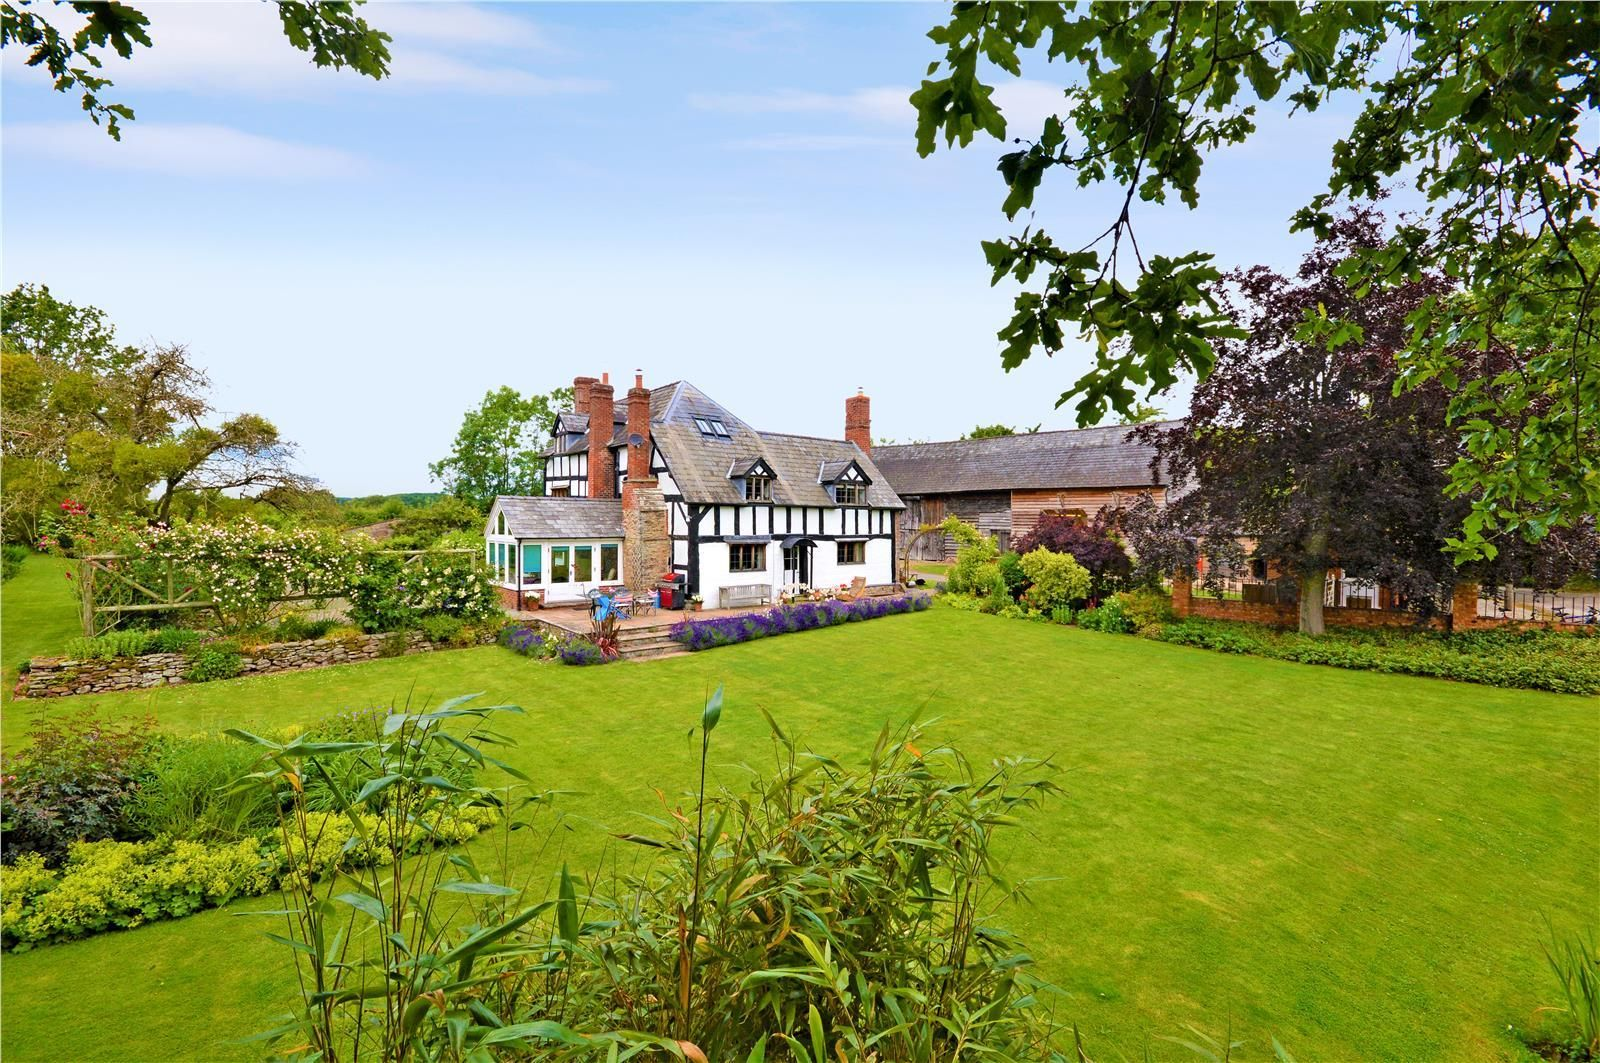 4 bed detached for sale in Dilwyn 3